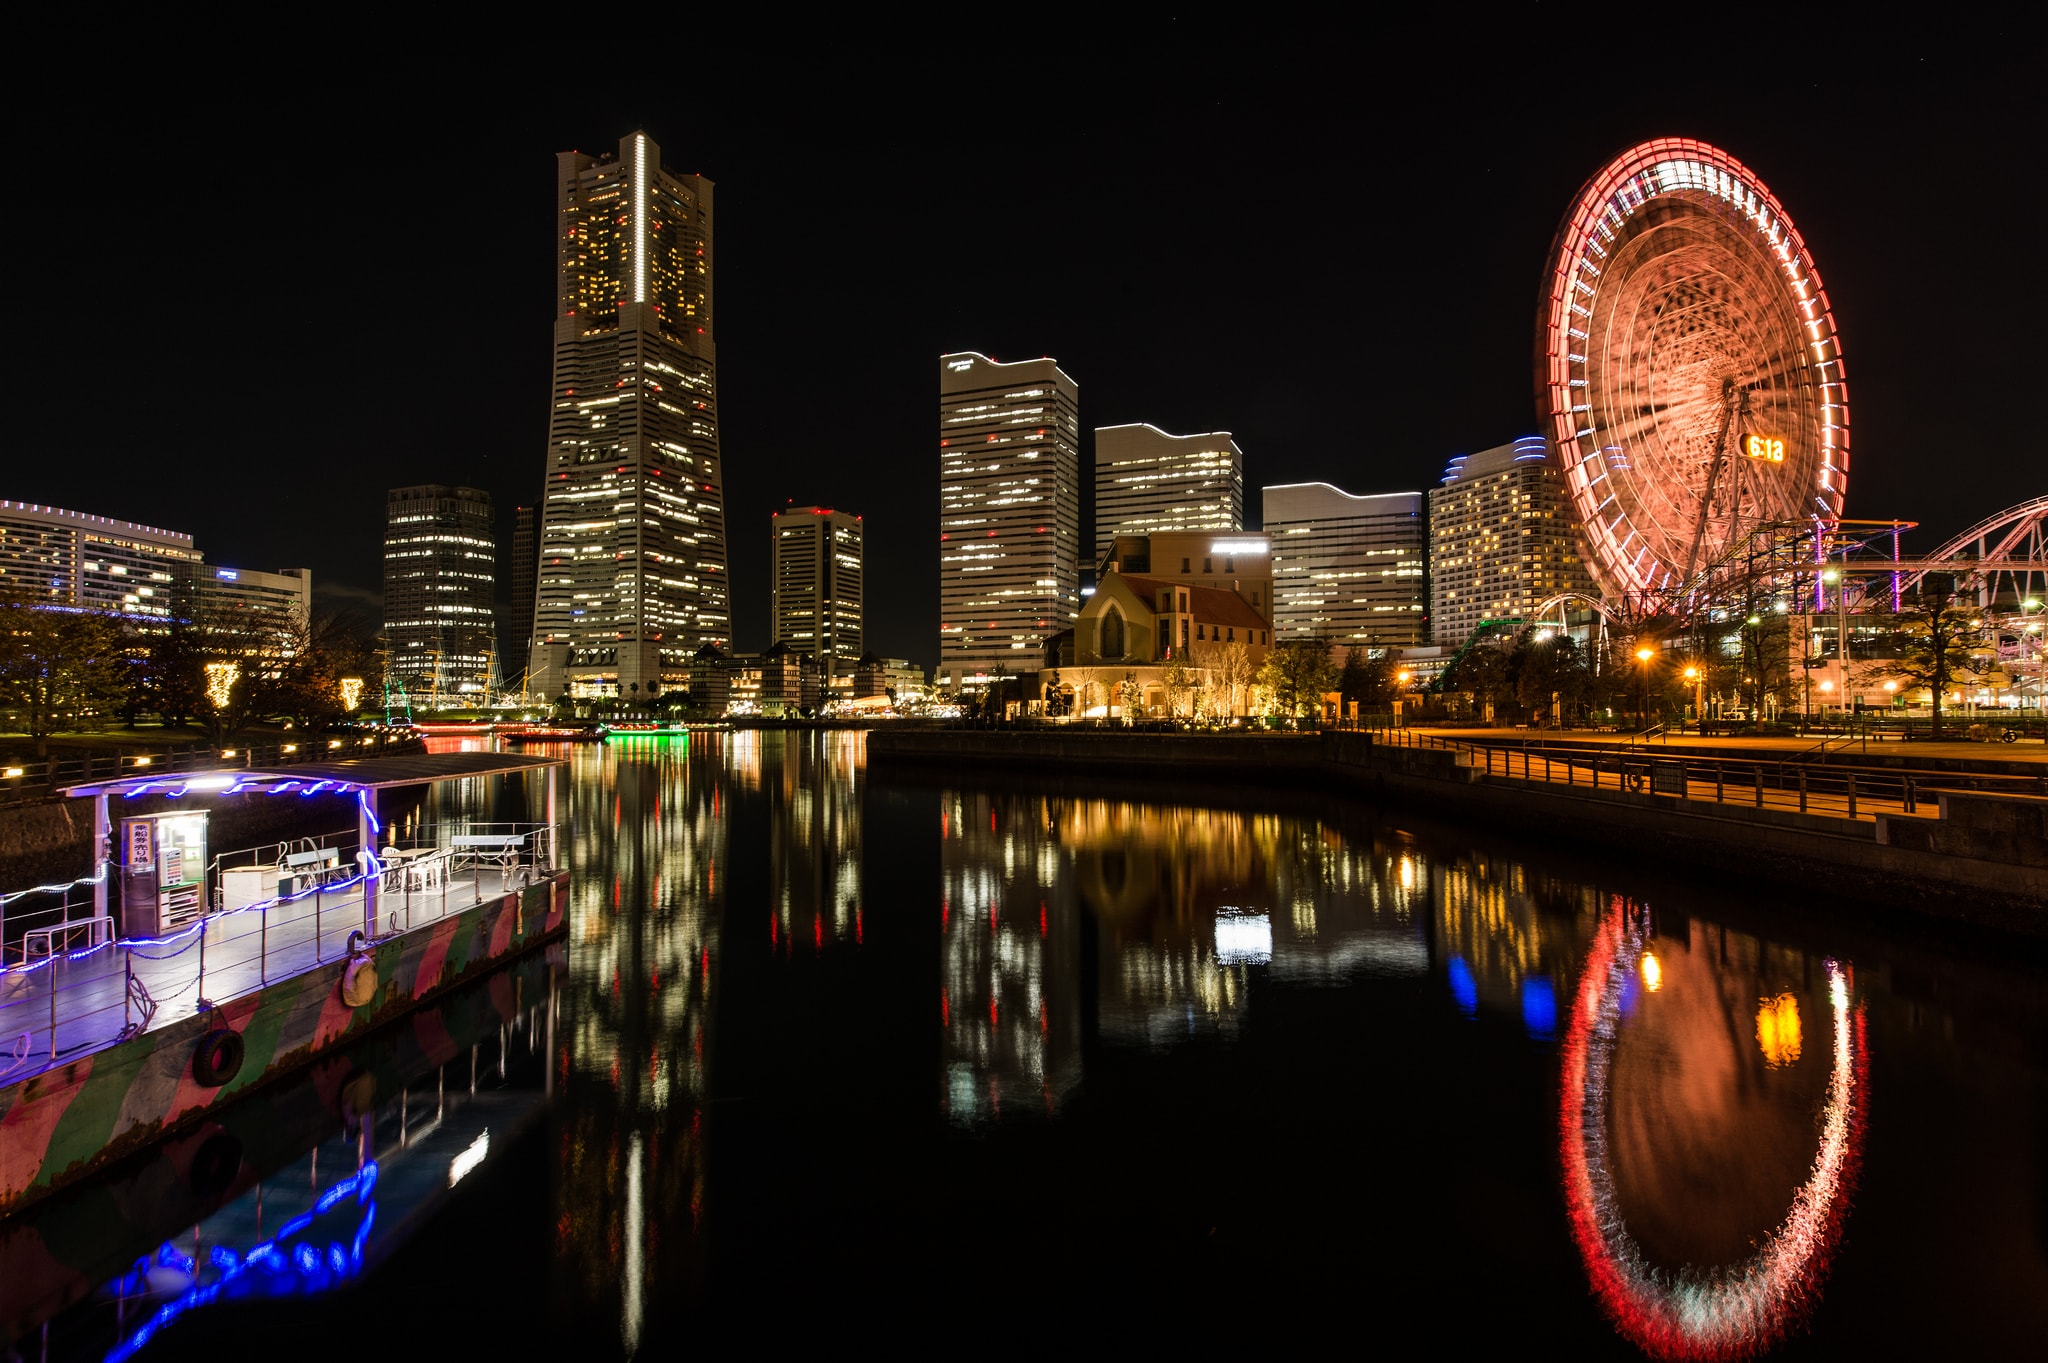 Yokohama cityscape over the water one of the best cities to visit in Japan